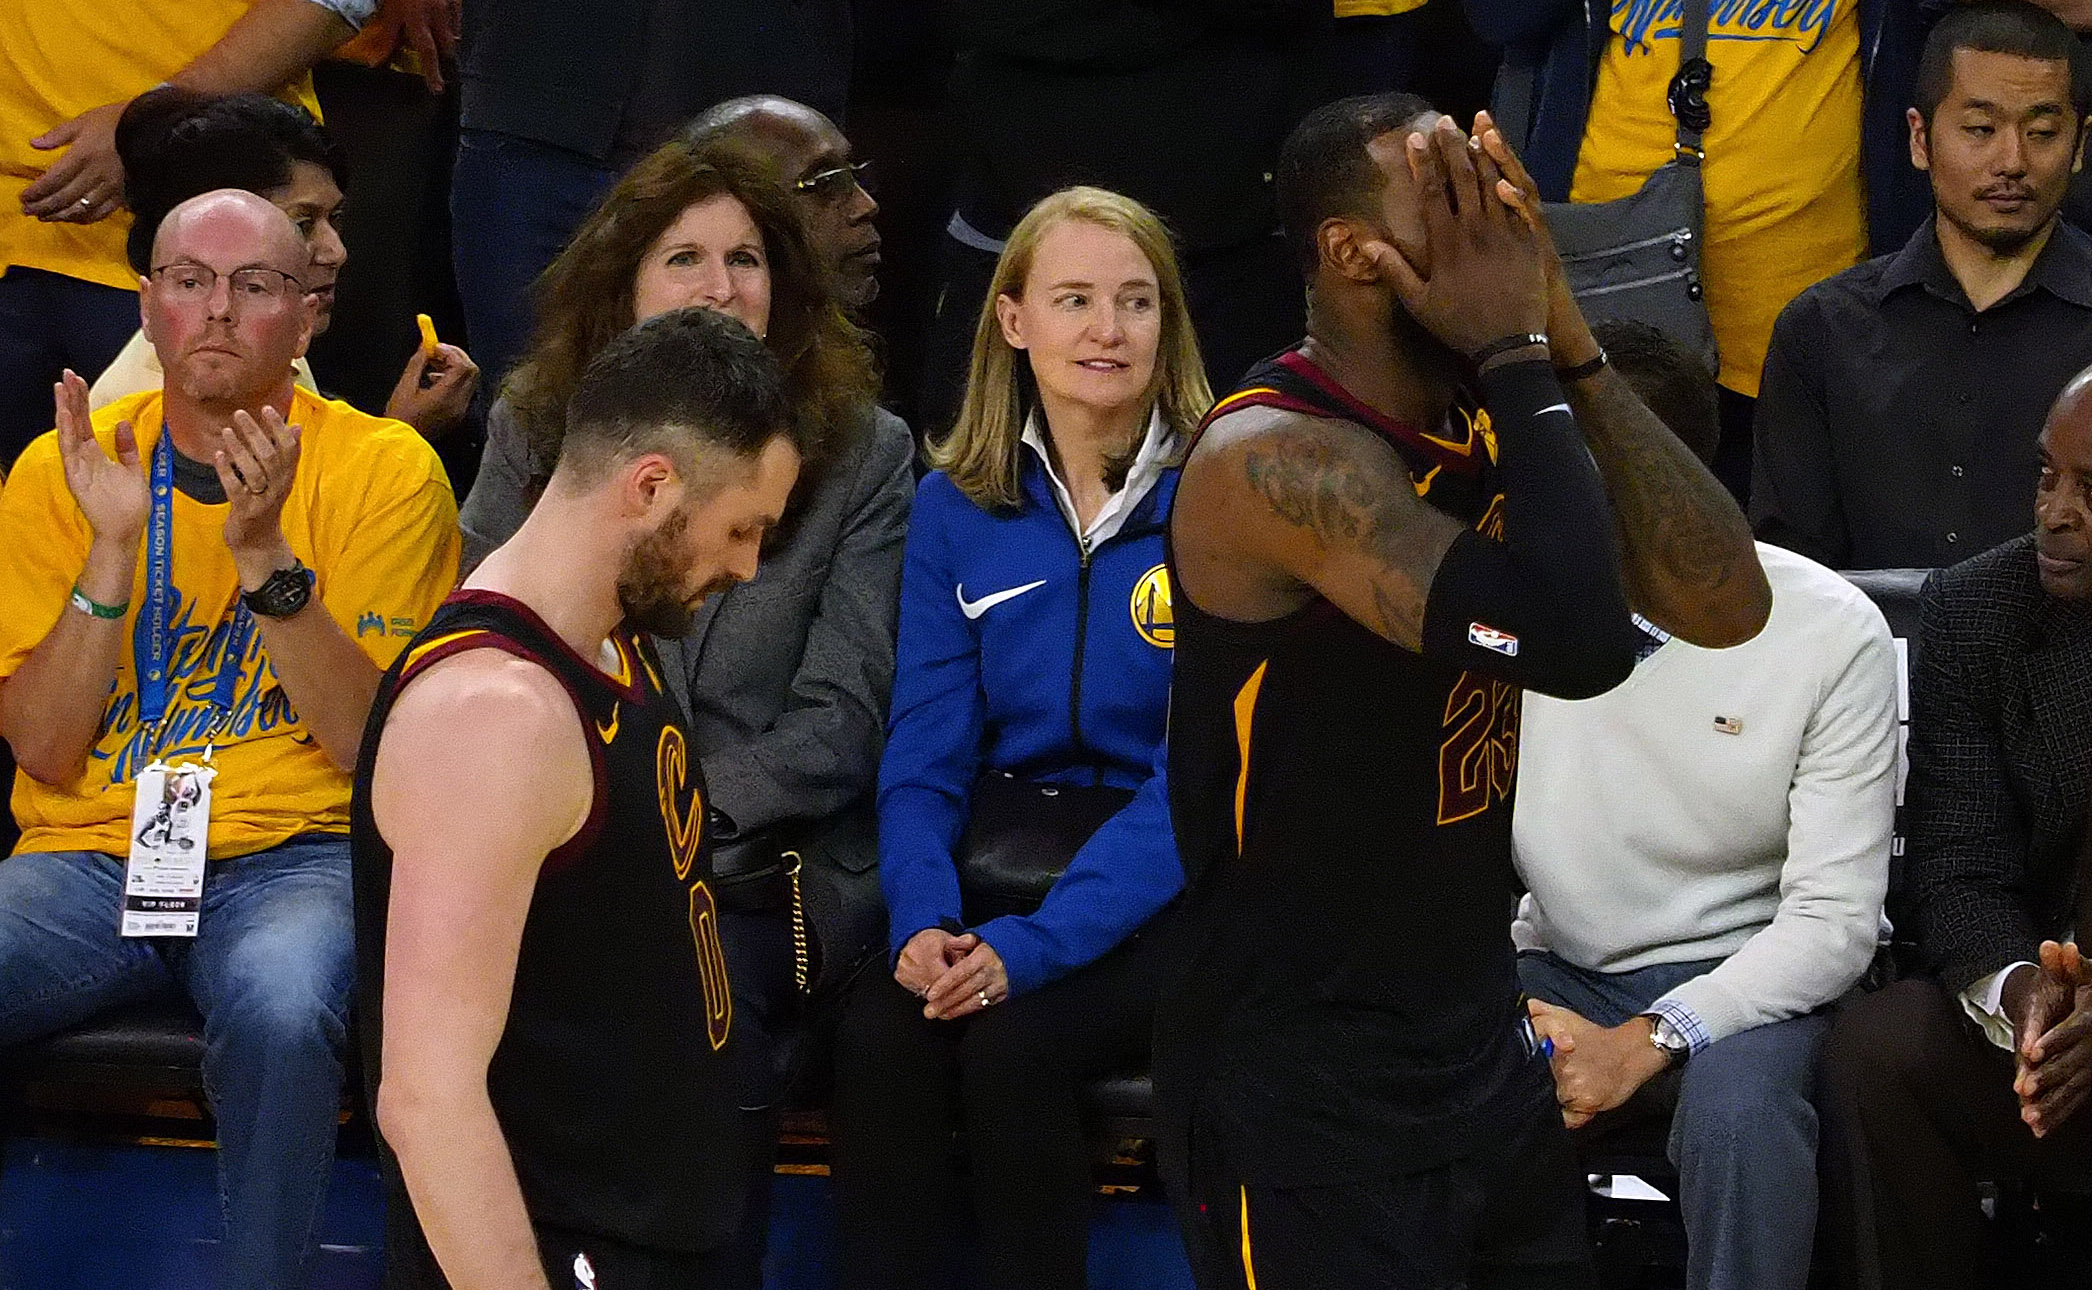 May 31, 2018; Oakland, CA, USA; Cleveland Cavaliers center Kevin Love (0) and forward LeBron James (23) react against the Golden State Warriors during overtime in game one of the 2018 NBA Finals at Oracle Arena. Mandatory Credit: Kelley L Cox-USA TODAY Sports